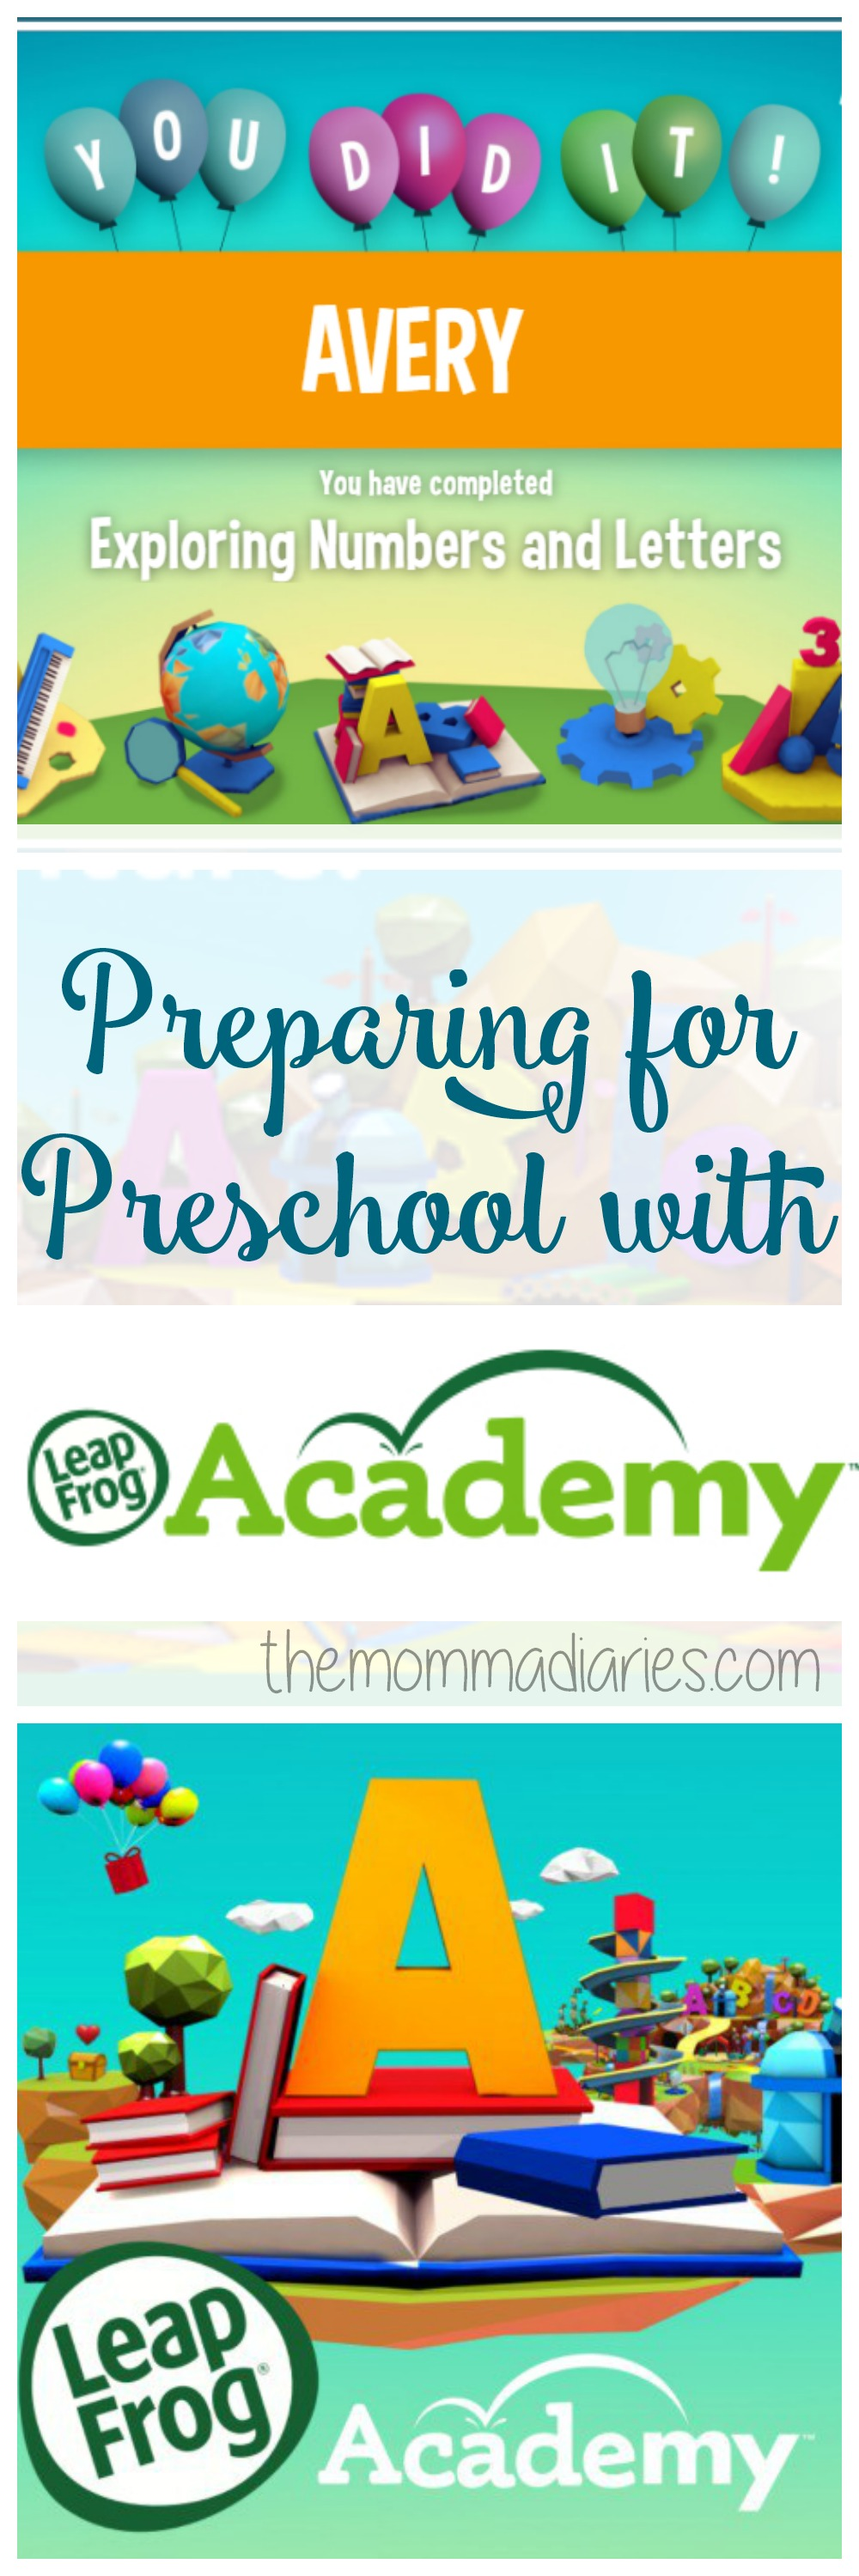 Preparing for Preschool with LeapFrog Academy